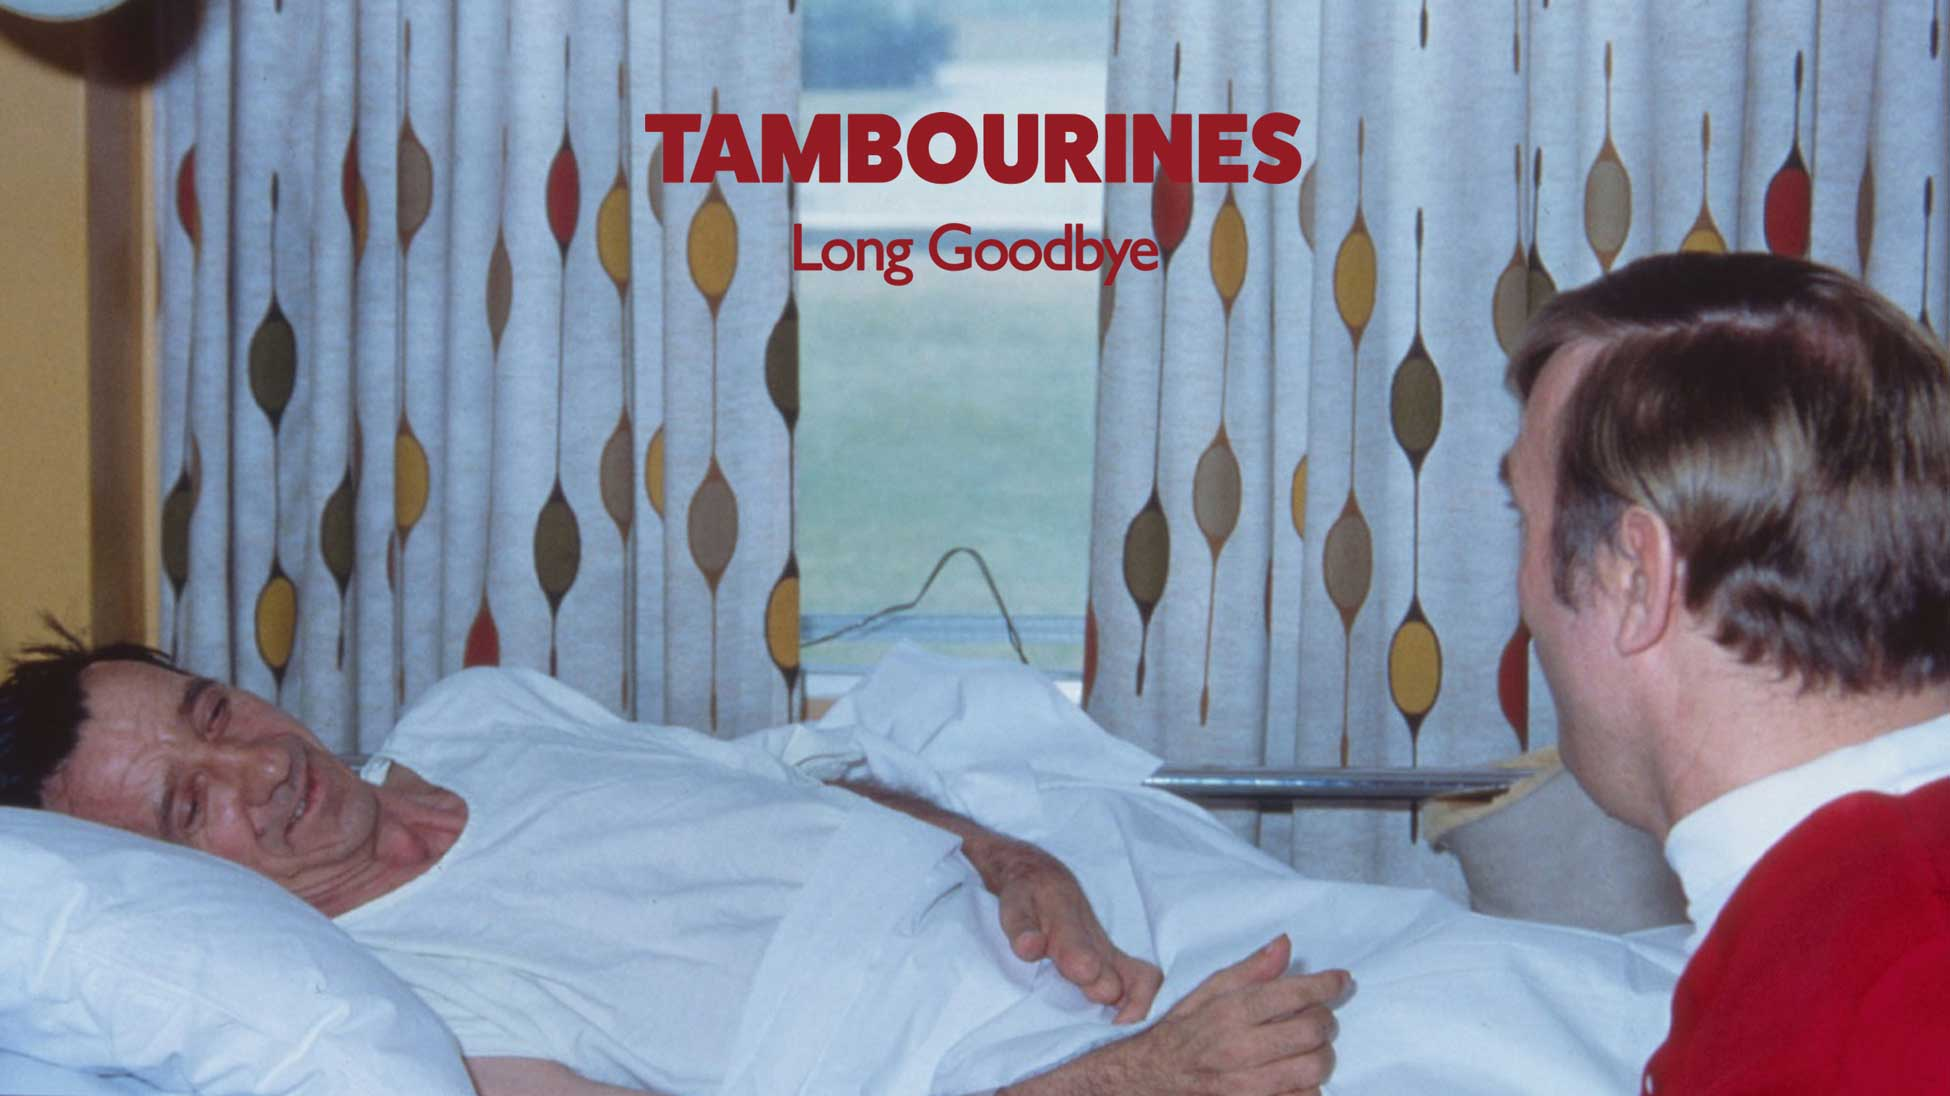 Tambourines -Long Goodbye